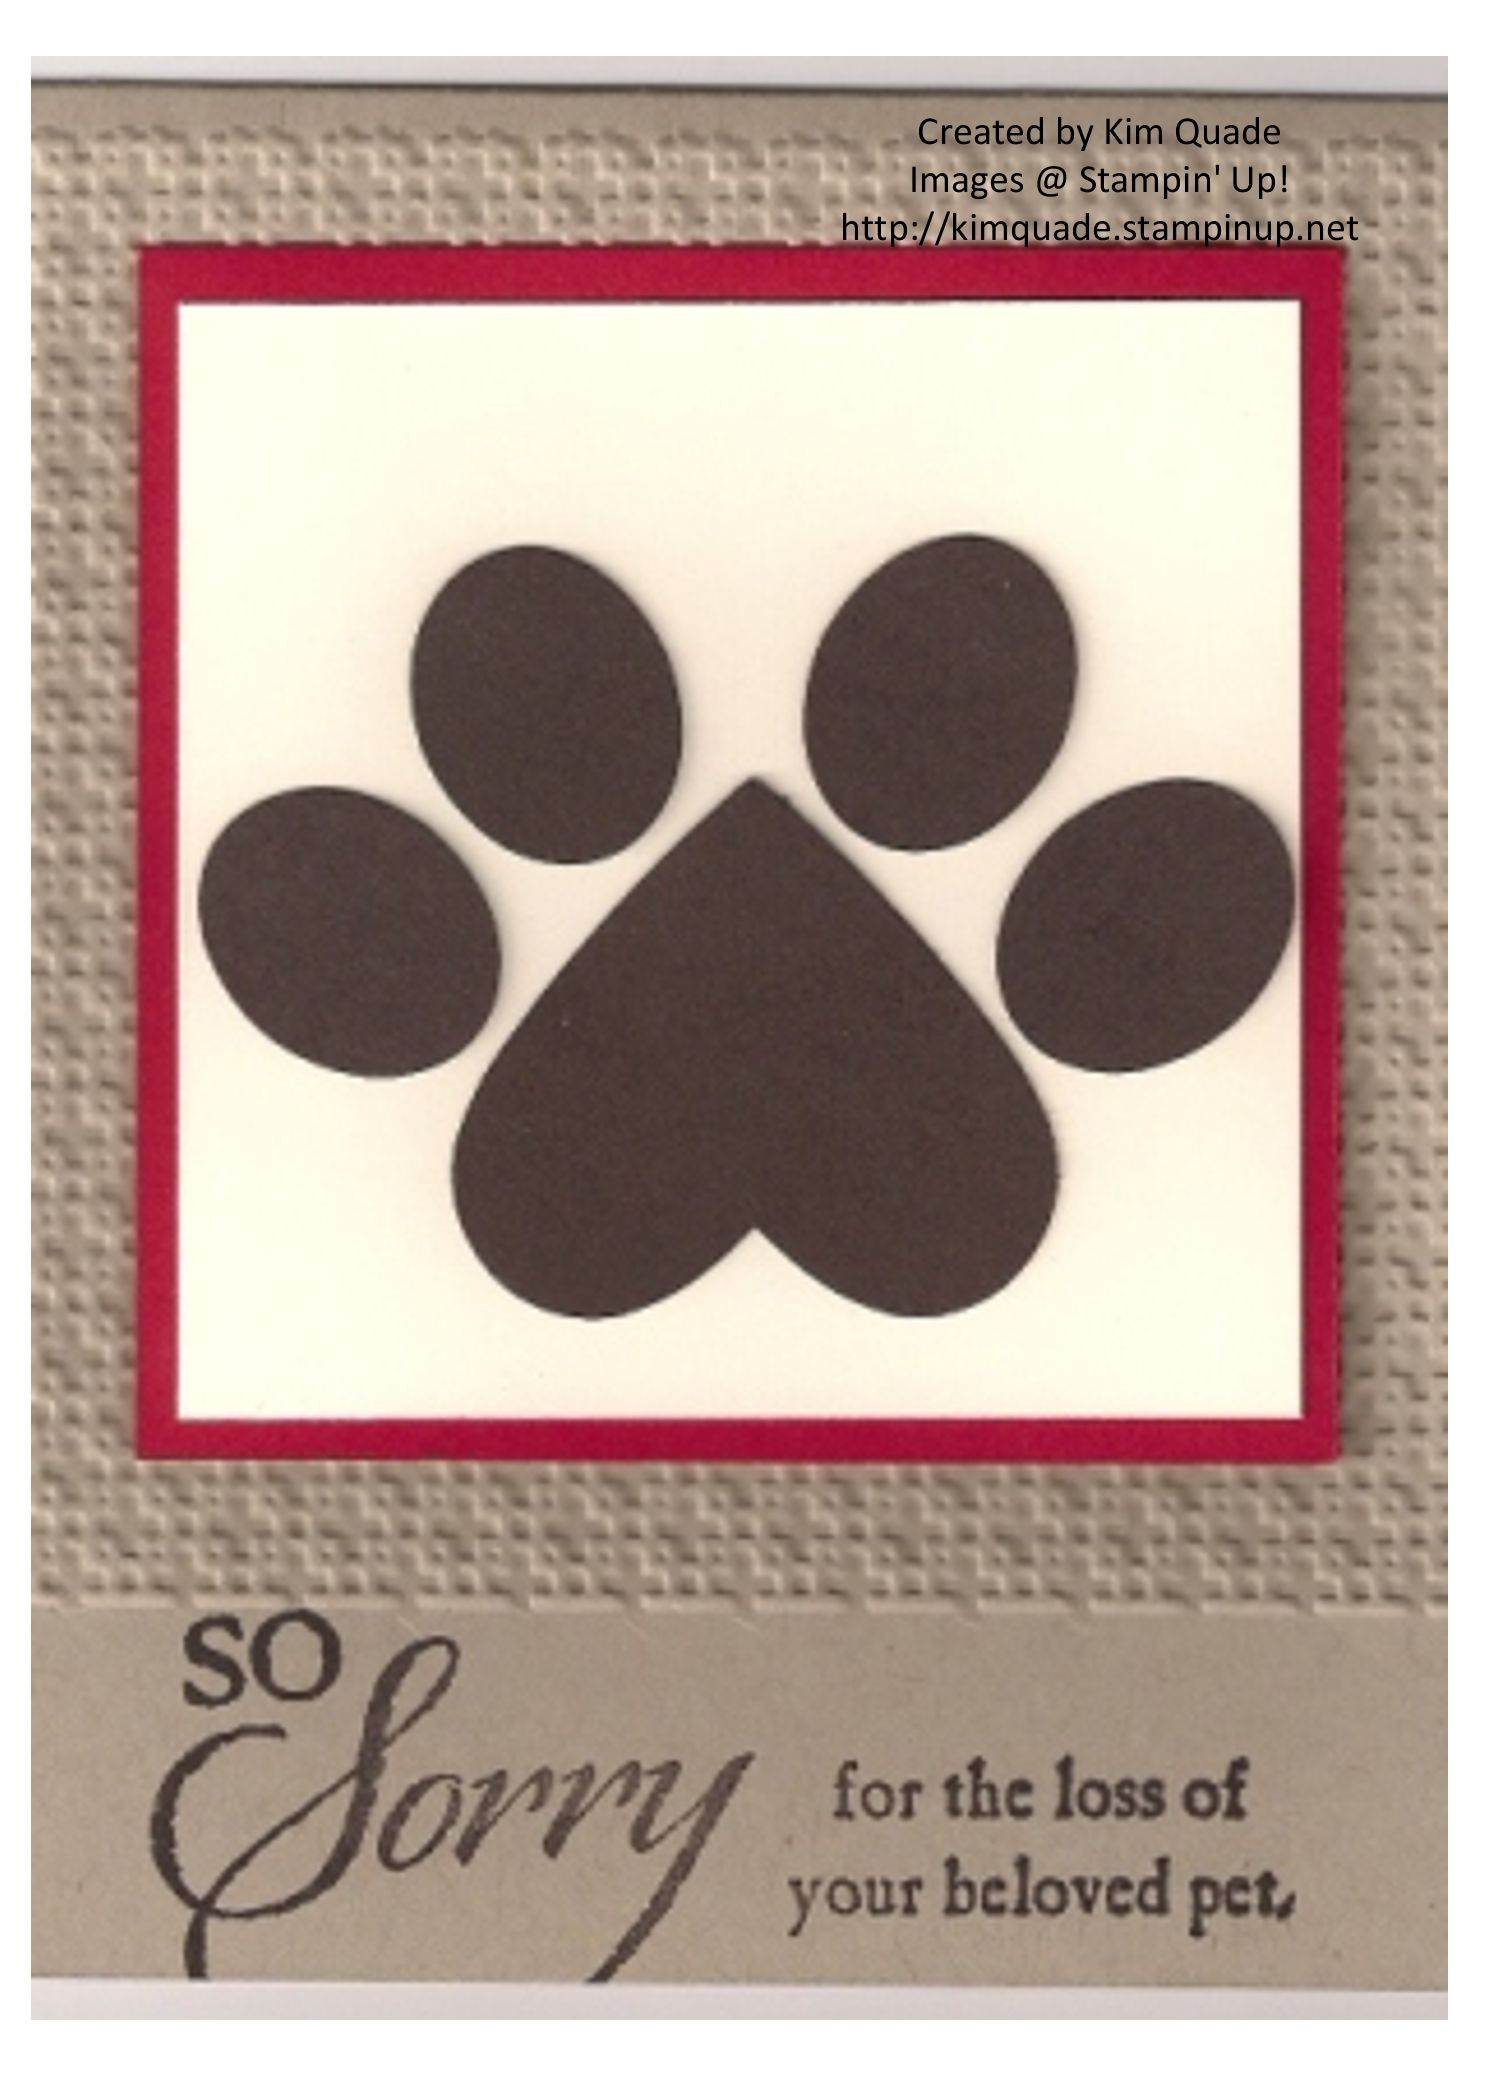 Dog Sympathy Card Created With Stampin Up Punches And So Sorry